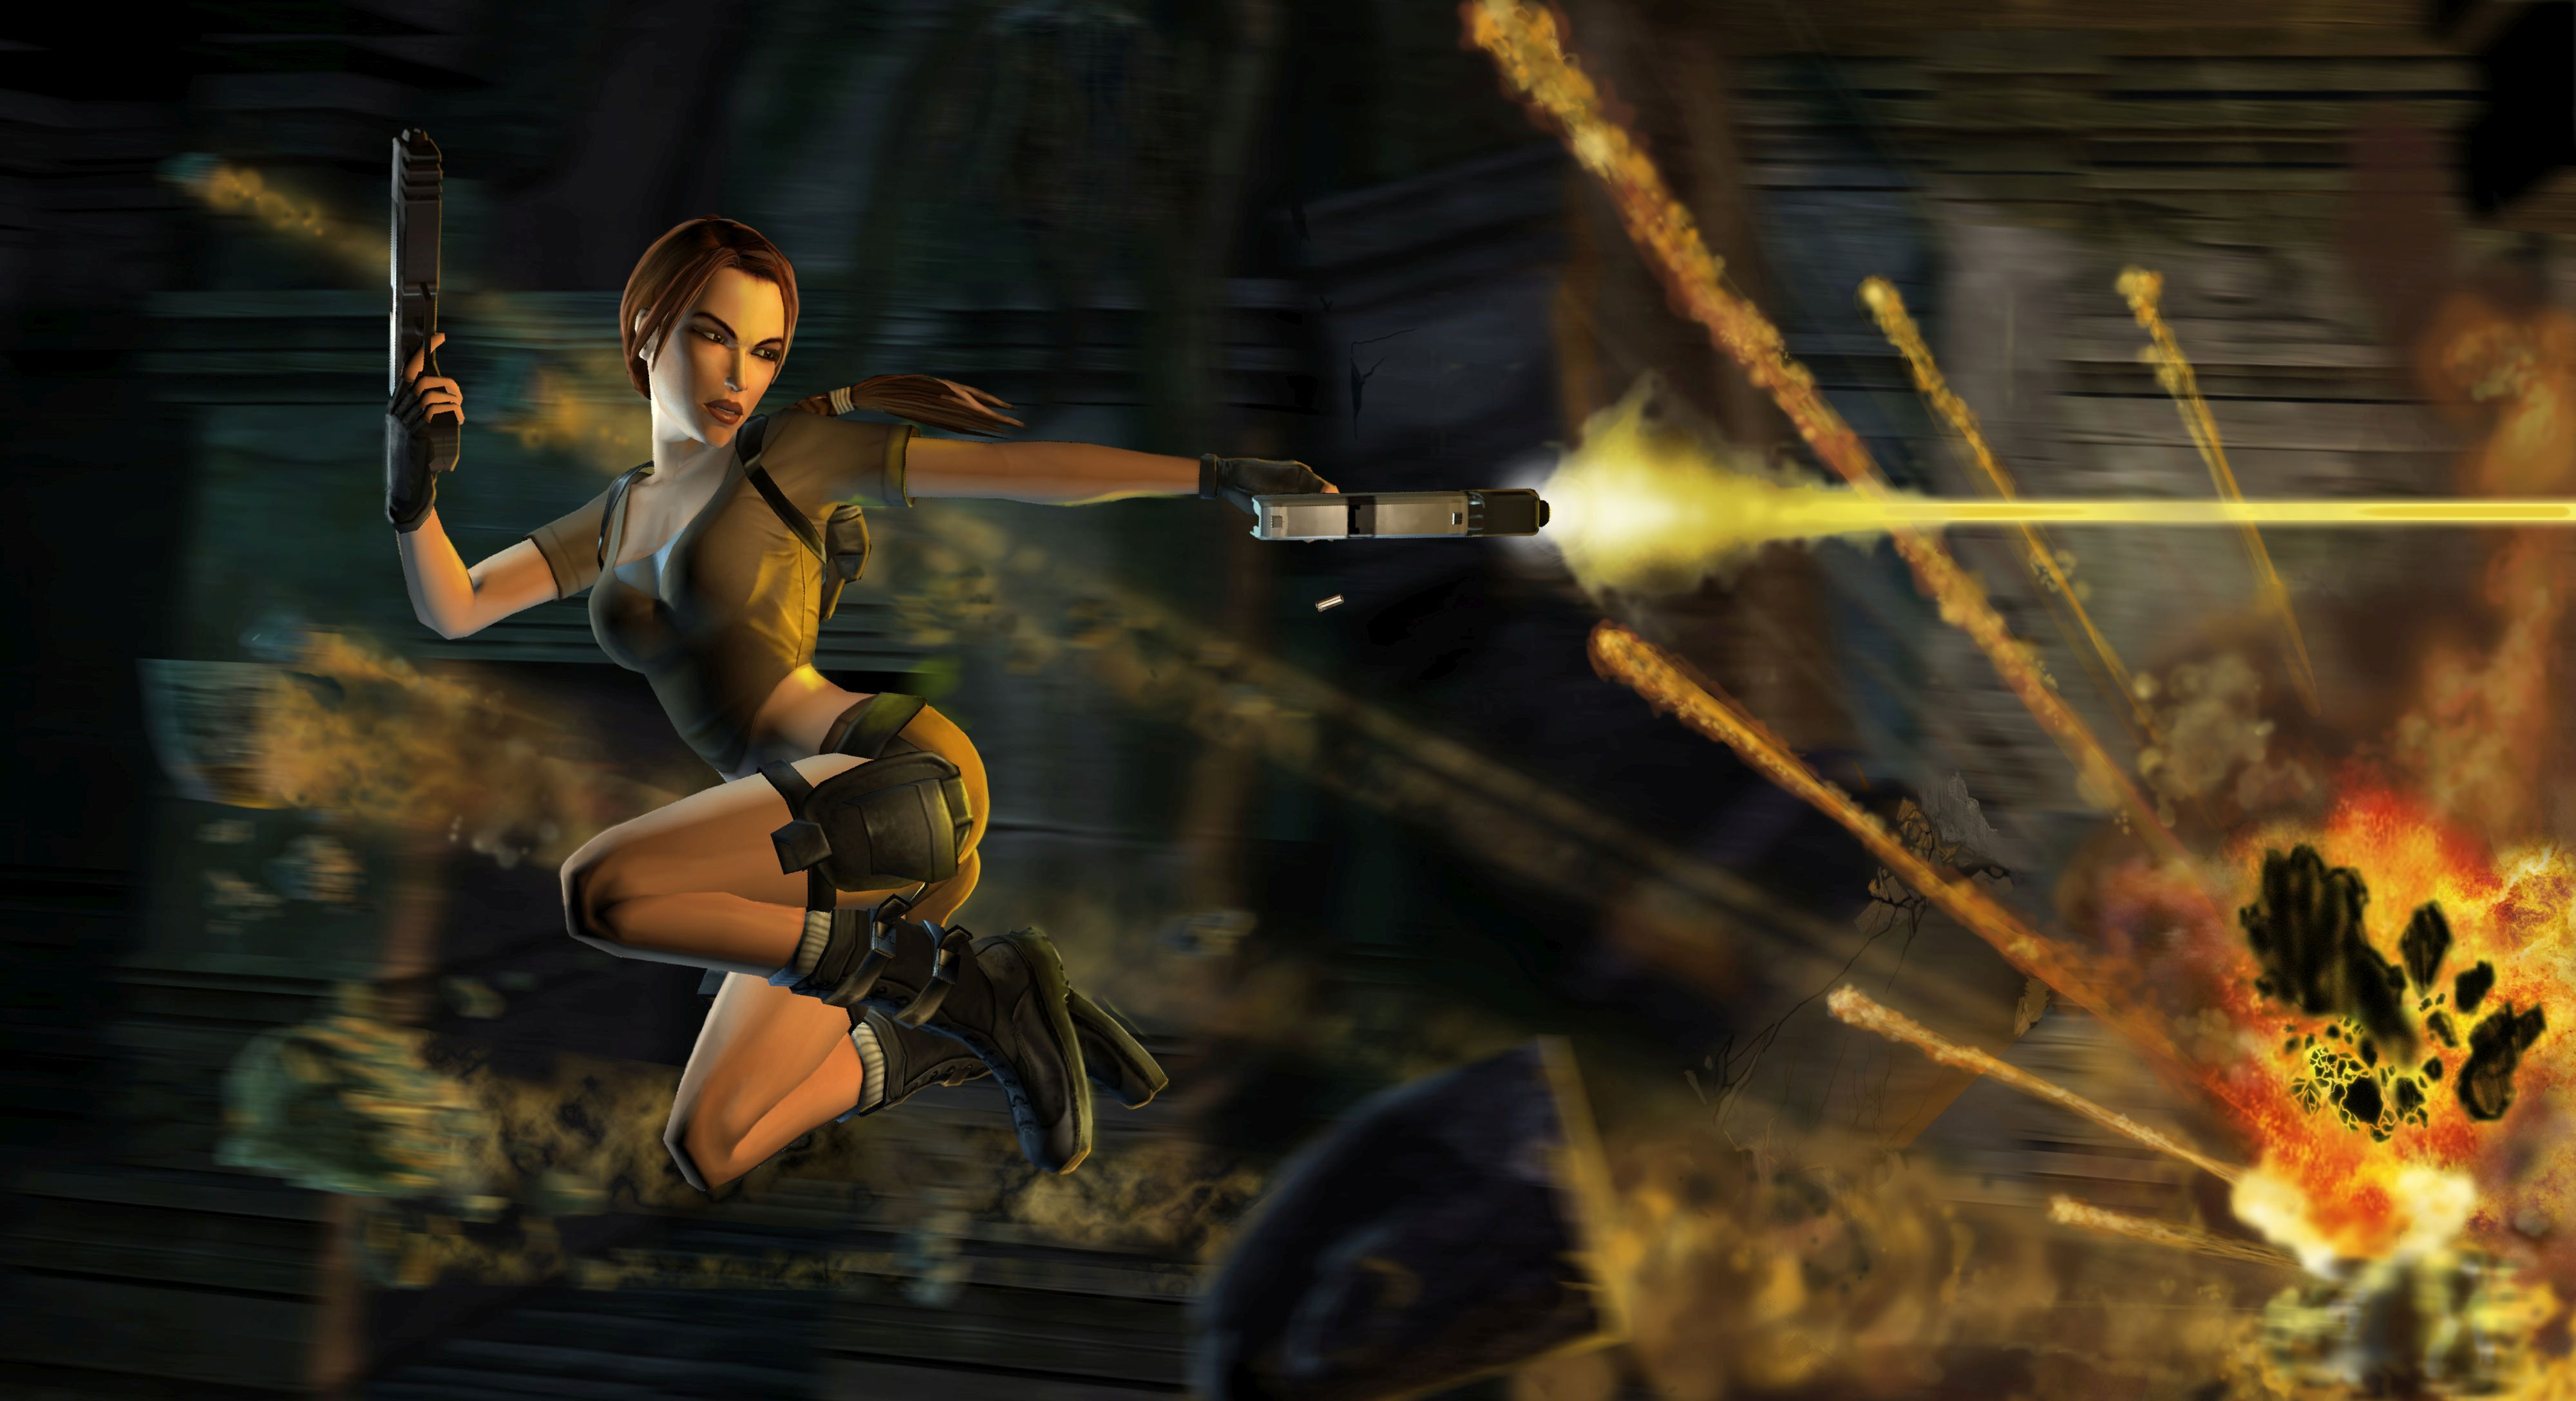 Lara Croft in 2006's Tomb Raider: Legend (image courtesy of Crystal Dynamics).